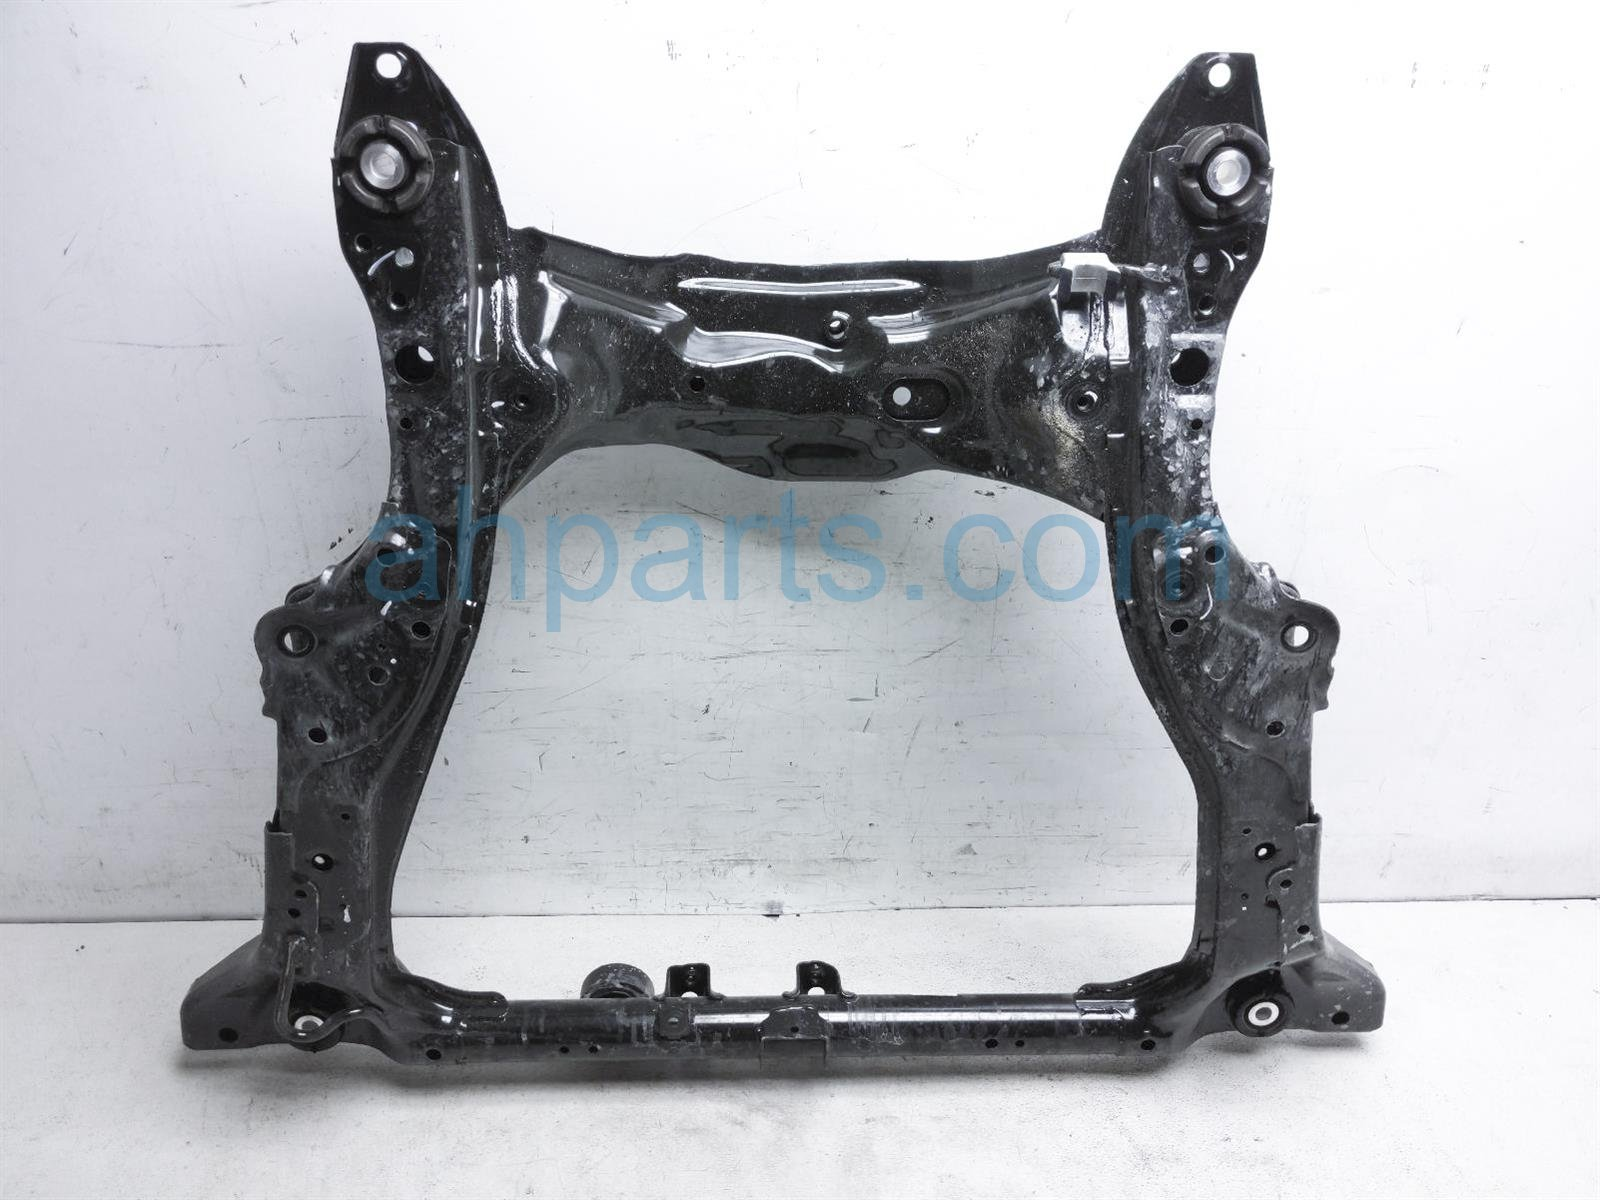 2019 Honda Pilot Crossmember Front Sub Frame / Cradle 50200 TG7 A01 Replacement